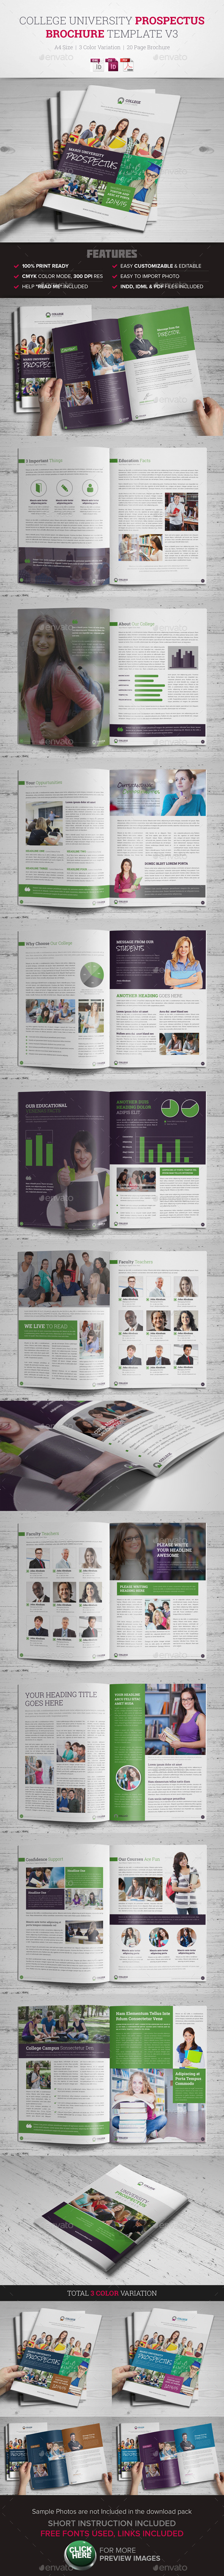 College University Prospectus Brochure v3 – University Brochure Template